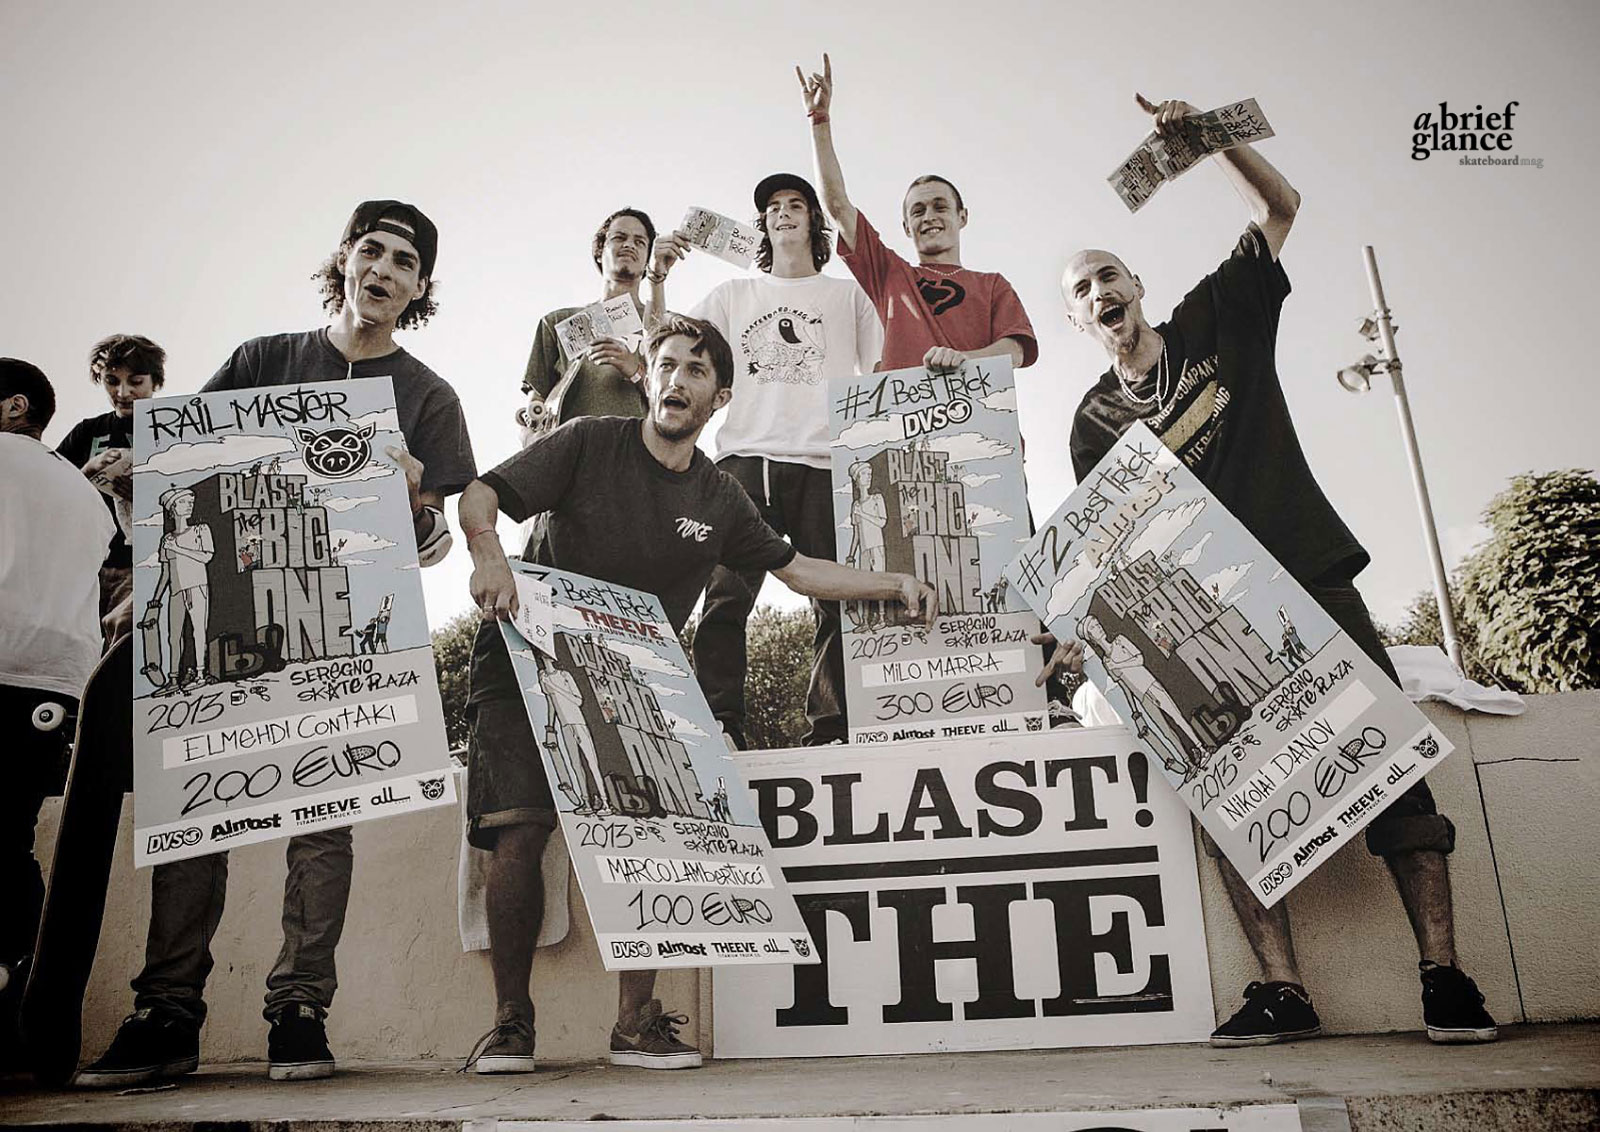 Blast! the Big One 2013 Edition secondo a brief glance